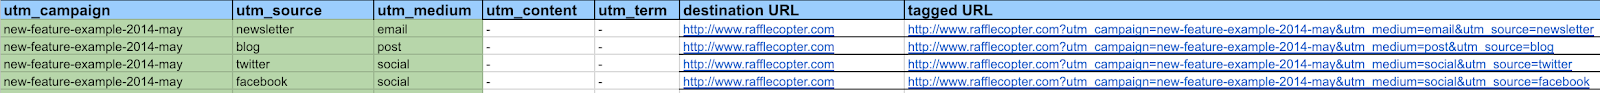 Example of UTM URL tracking spreadsheet